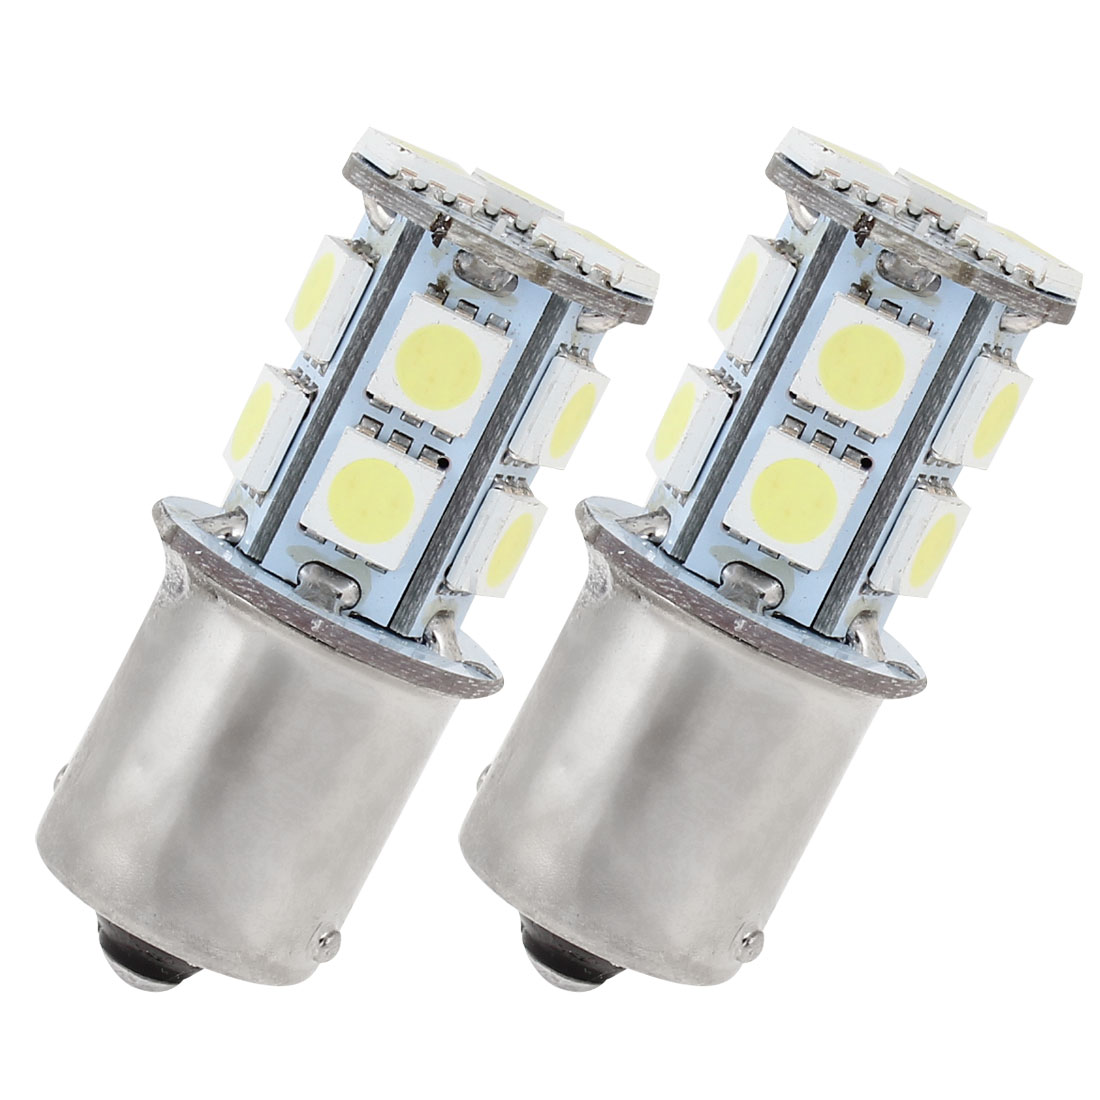 2Pcs White 13 LED 1156 BA15S 5050 SMD Car Indicator Backup Tail Turn Light 5008